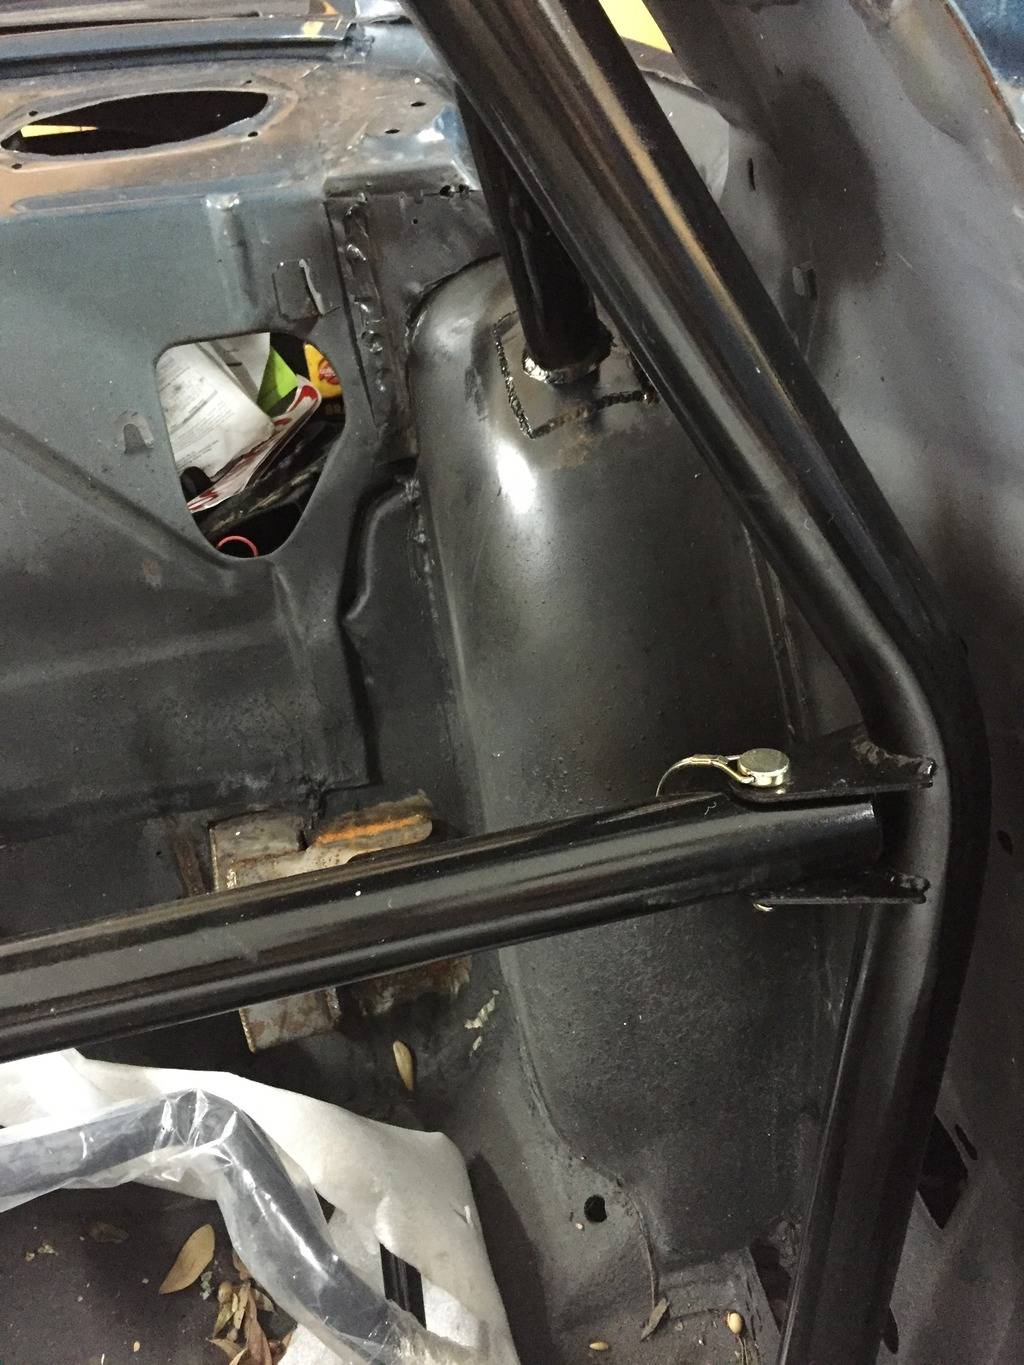 Roll Cage/Door Bar Compromise